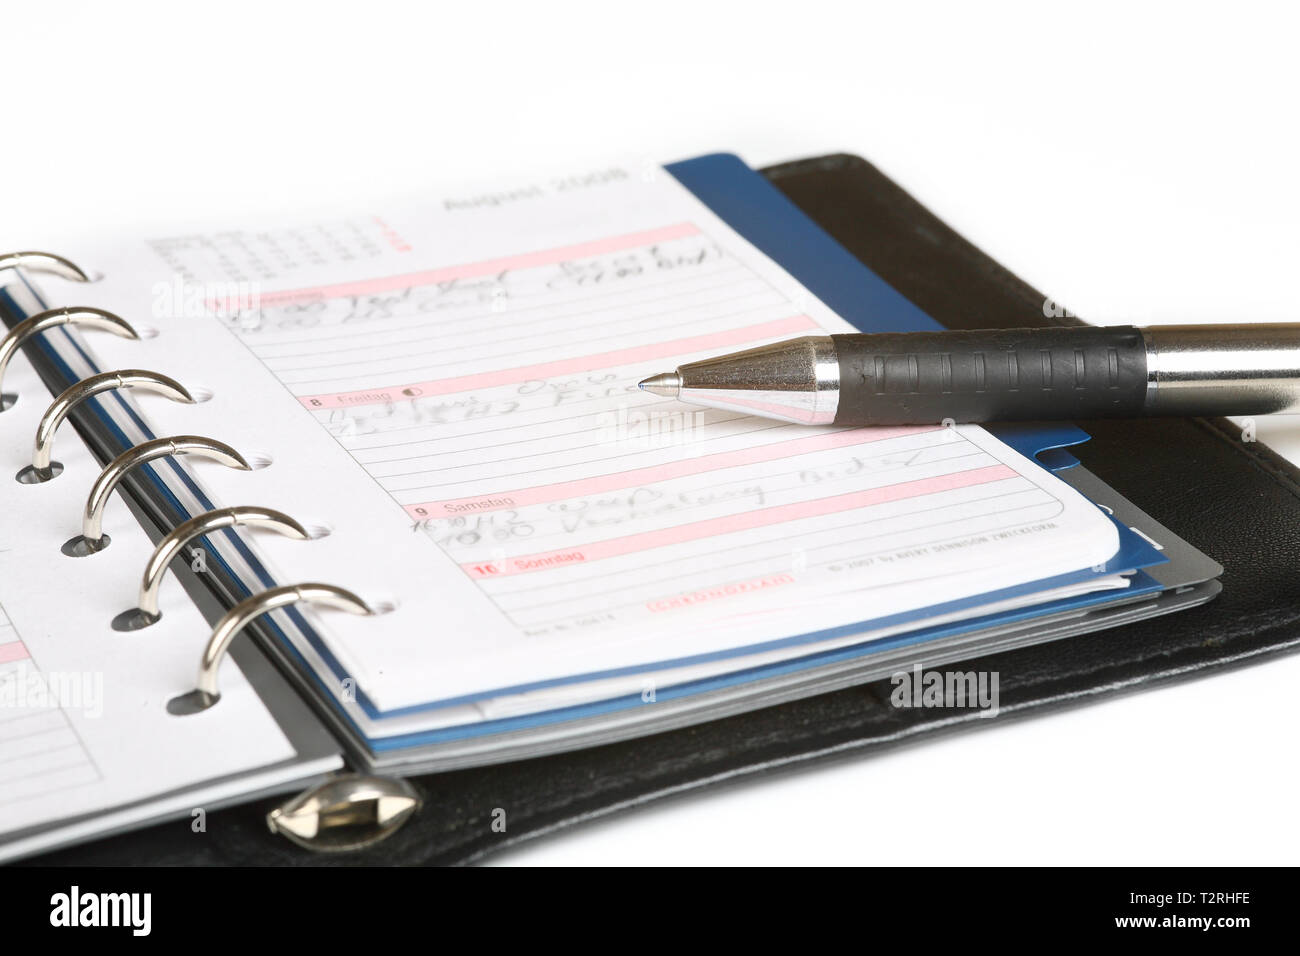 An open pocket calendar with a pen on it. Isolated against a white background. - Stock Image